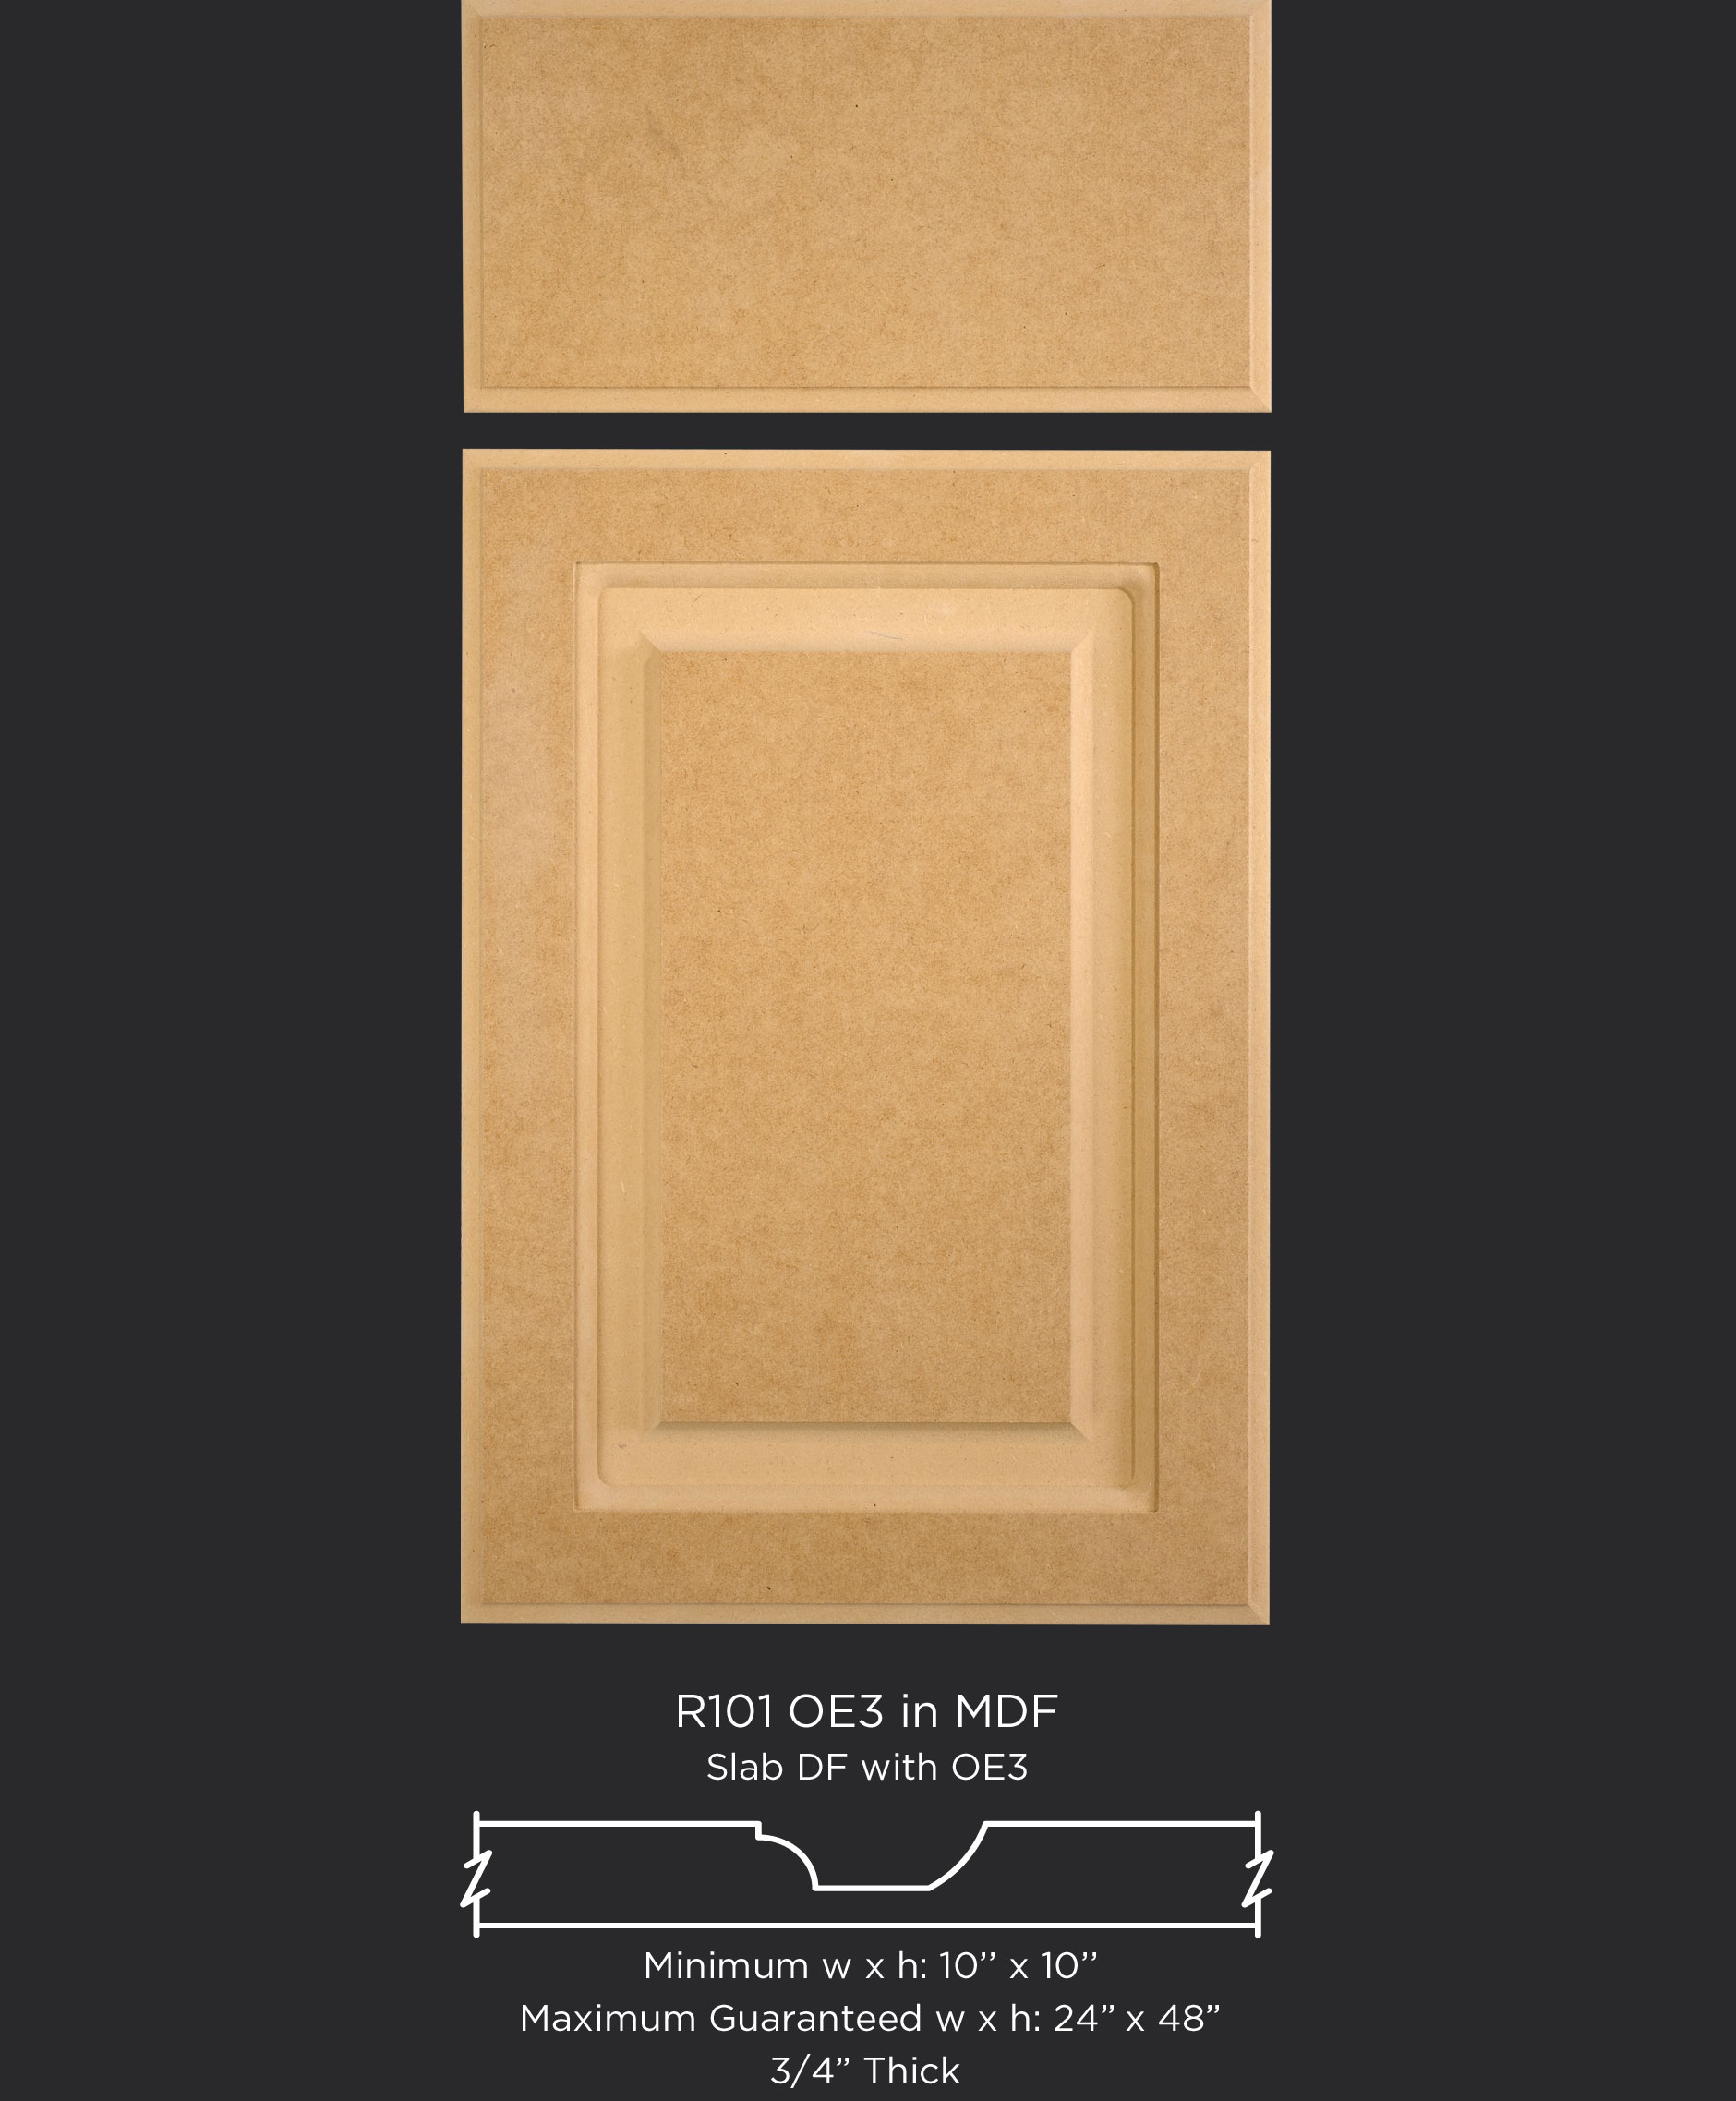 R101 routed 1-piece MDF cabinet door with OE3